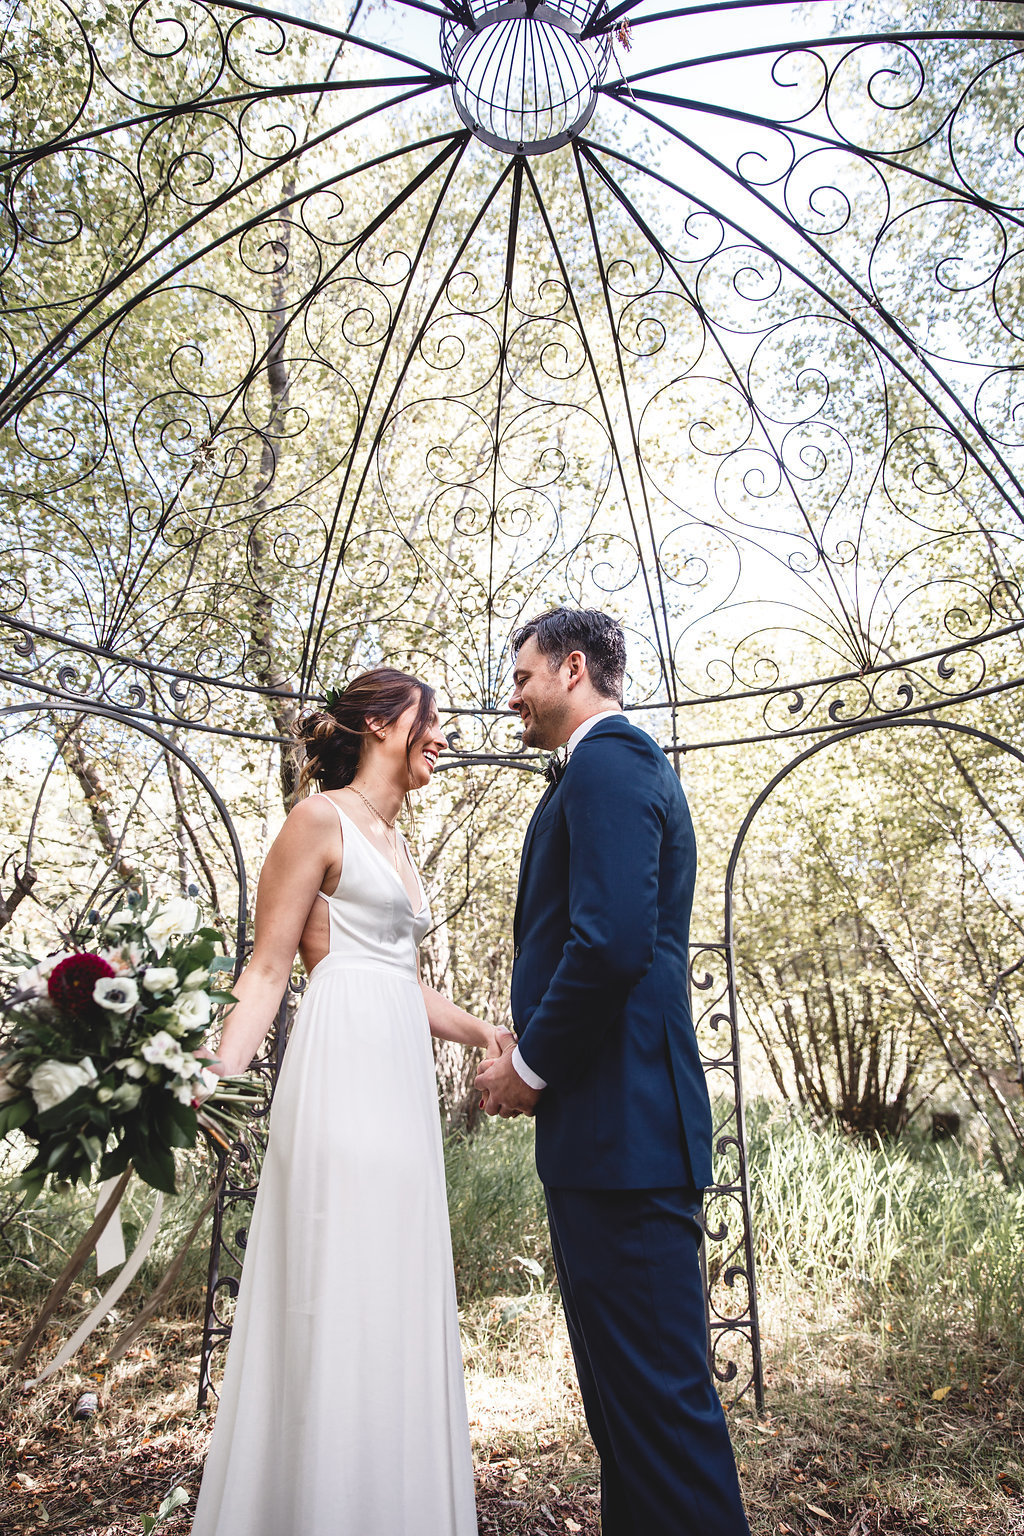 new-mexico-destination-engagement-wedding-photography-videography-adventure-066